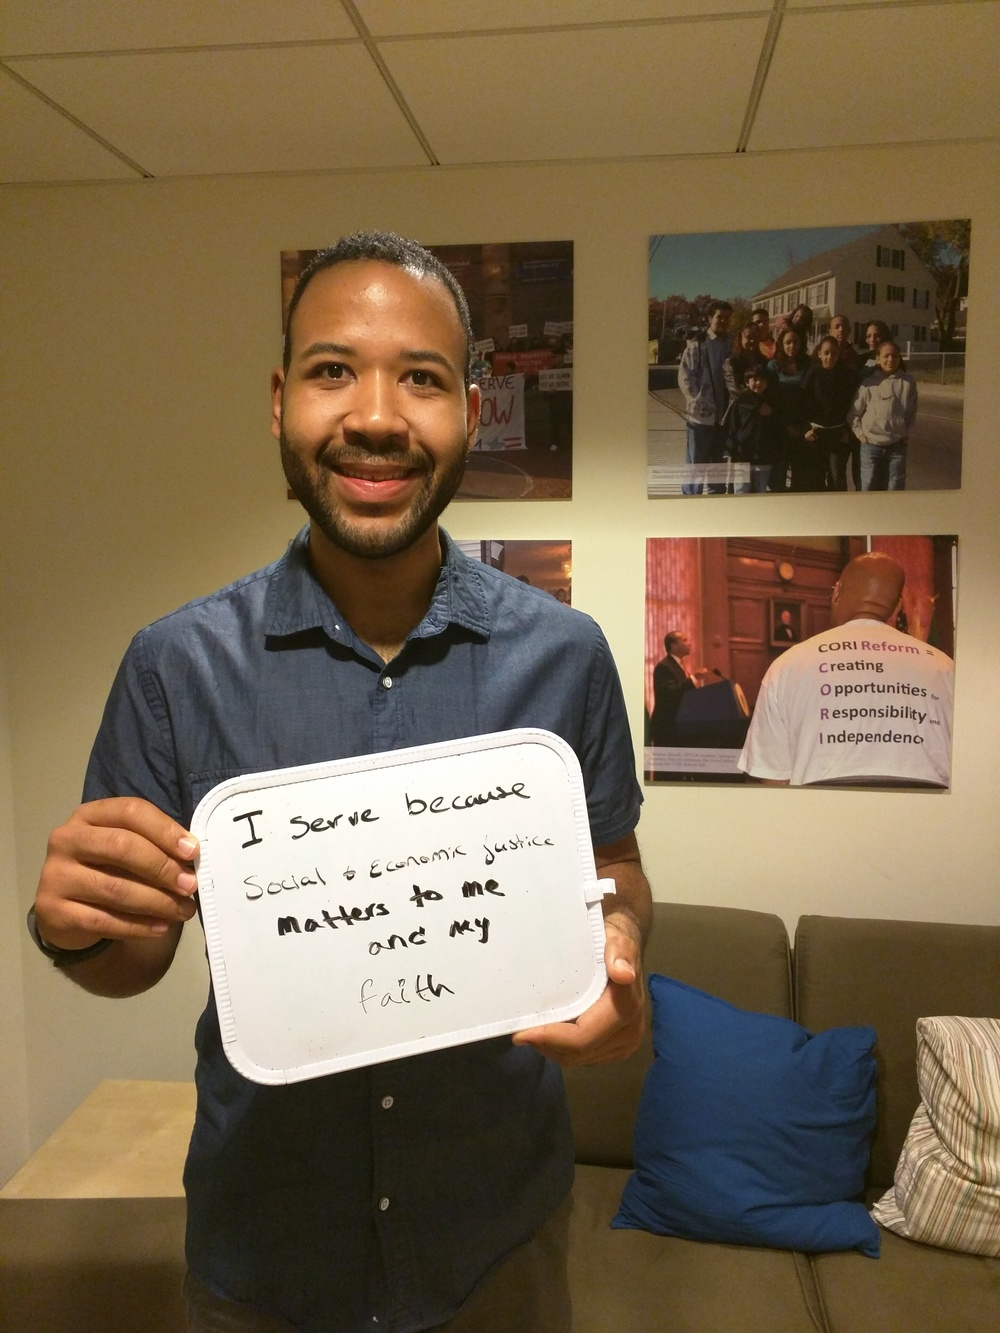 """I serve because social & economic justice matters to me and my faith"" - Ashton Murray, Micah Fellow at Episcopal City Mission & Cambridge intentional community"